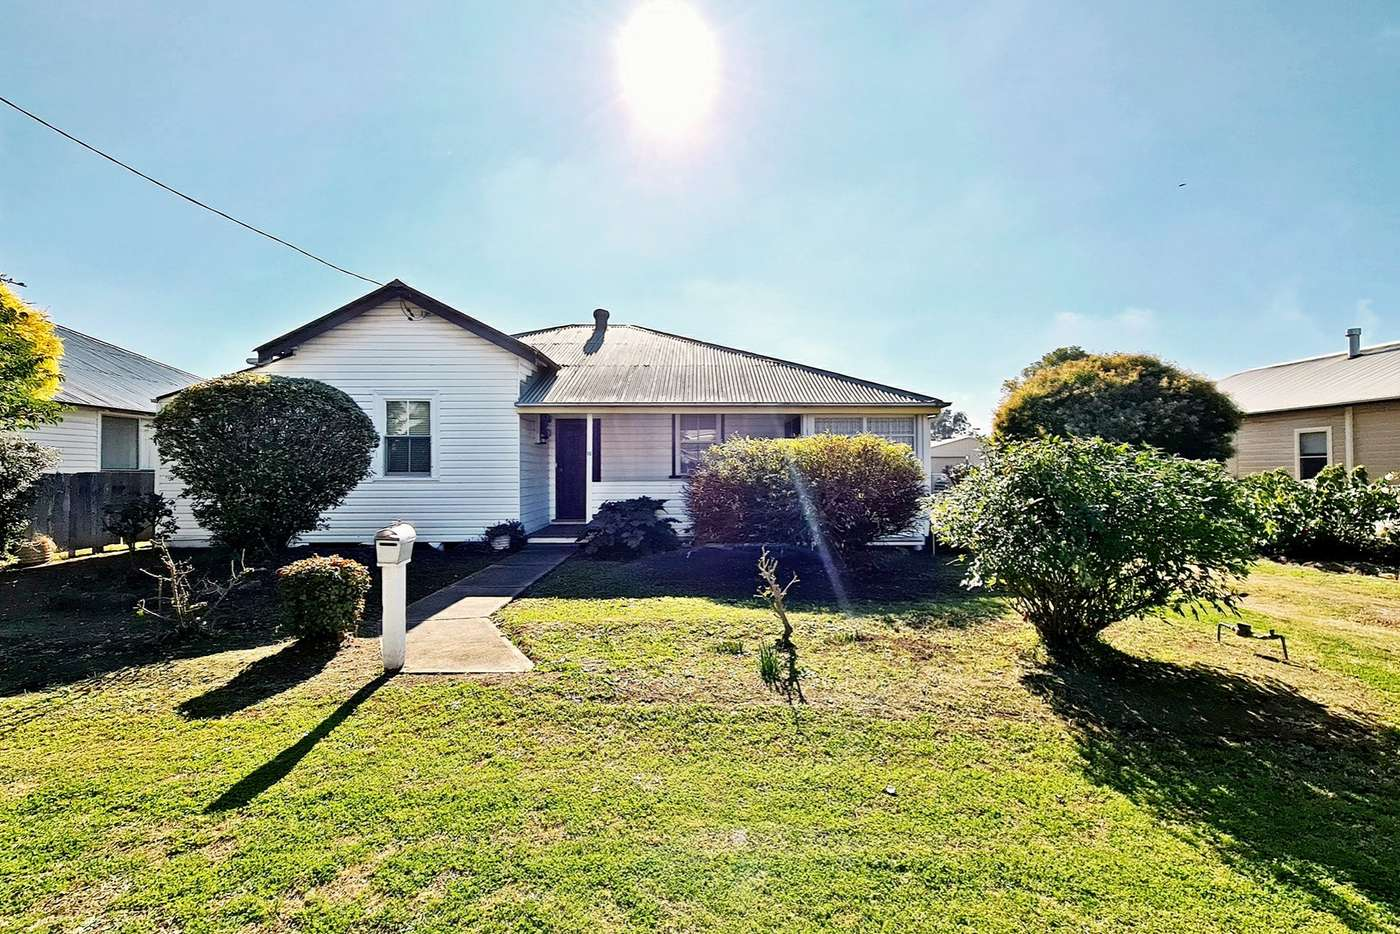 Main view of Homely house listing, 10 Isobel Street, Denman NSW 2328